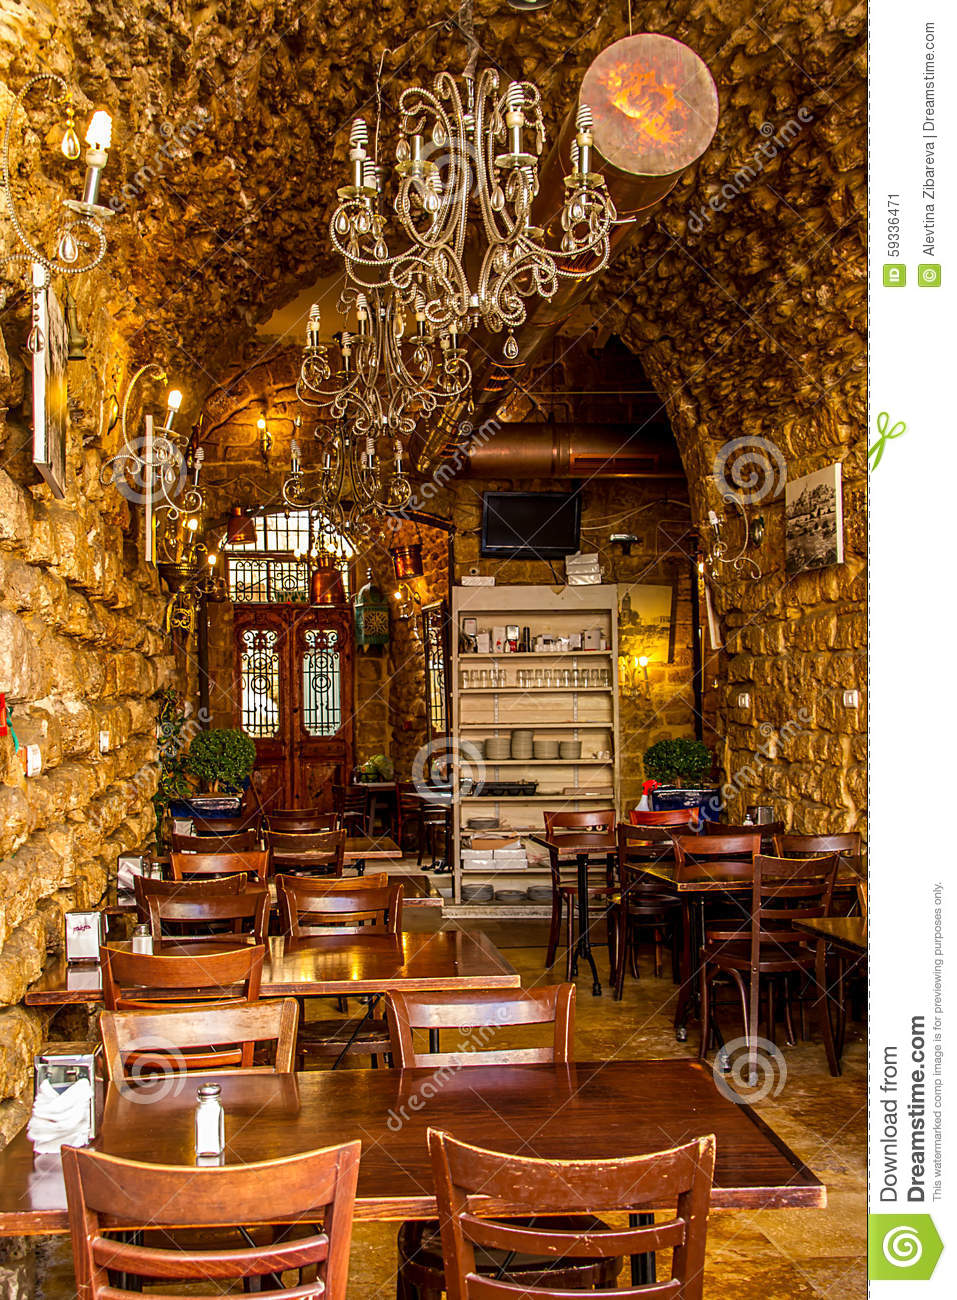 small restaurant in old jaffa stock image image of exterior